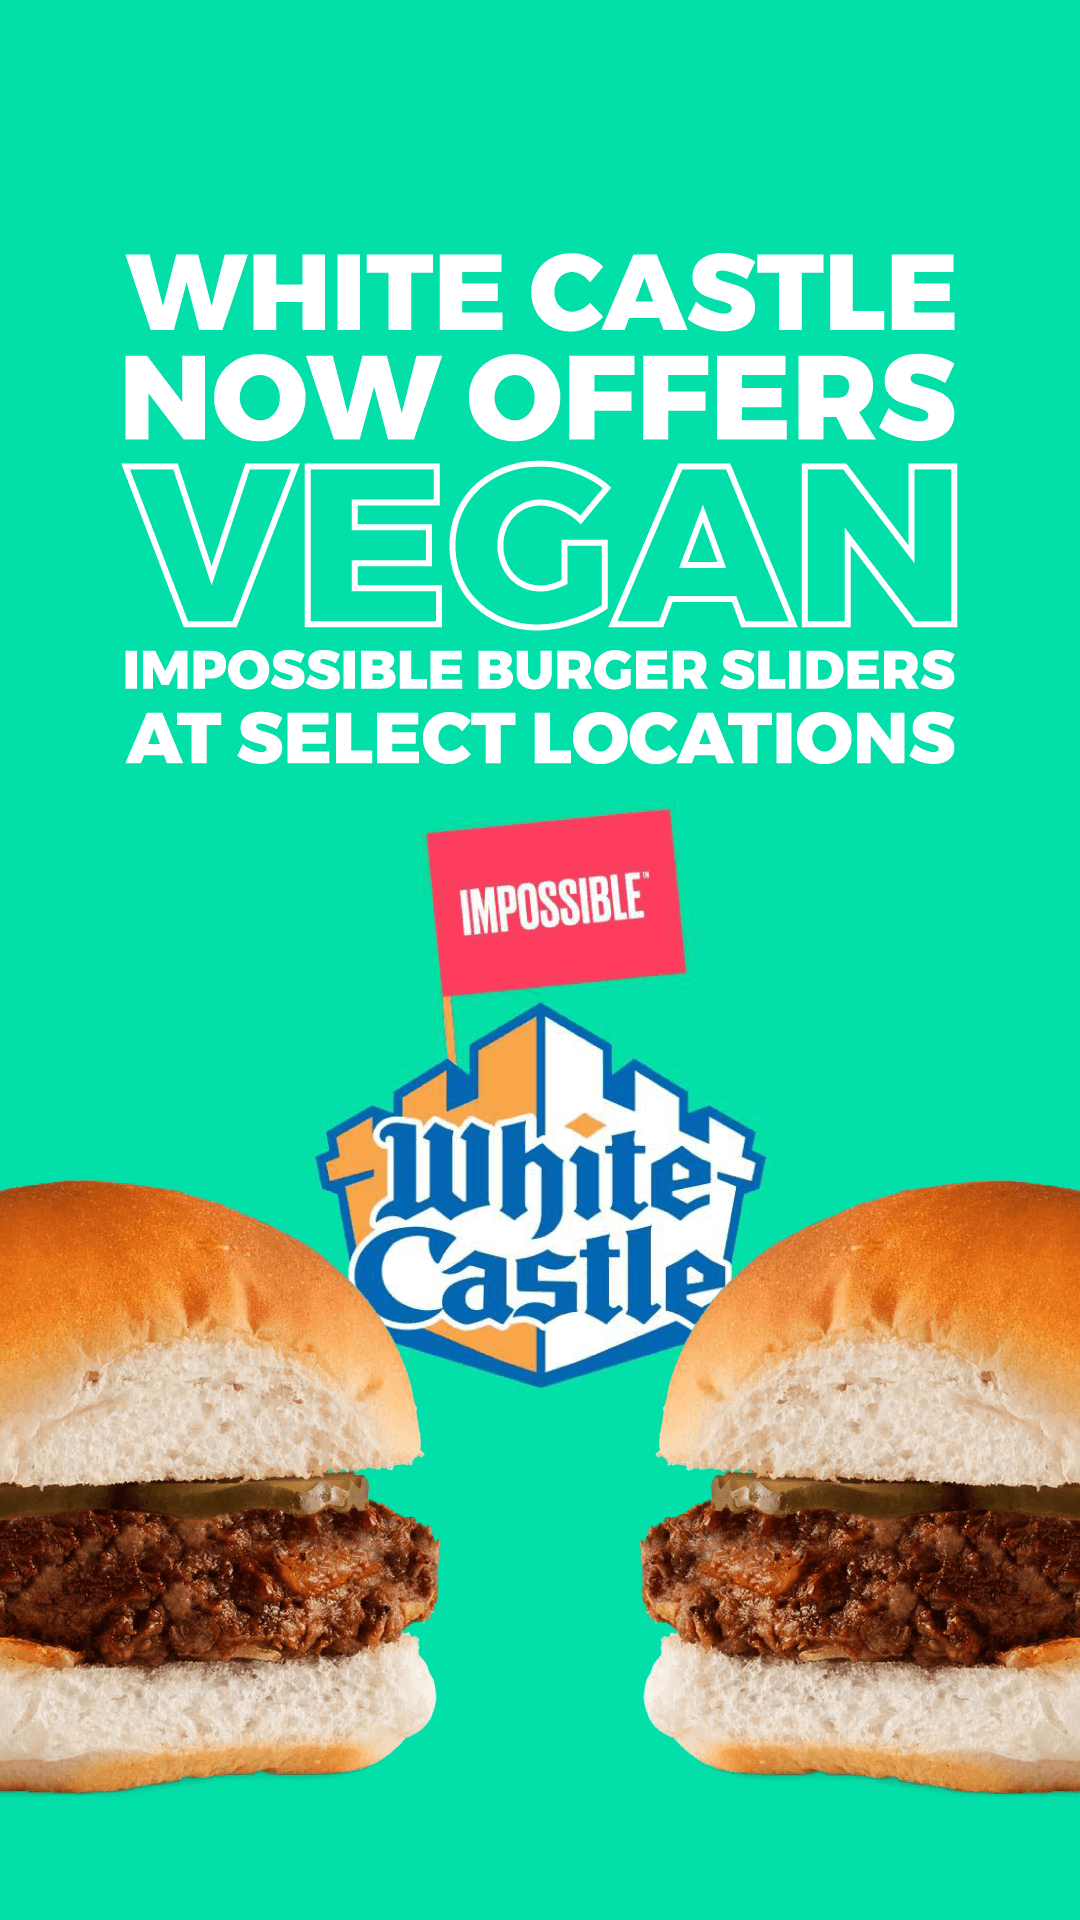 White Castle Now Offers Vegan Impossible Burger Sliders at Select Locations